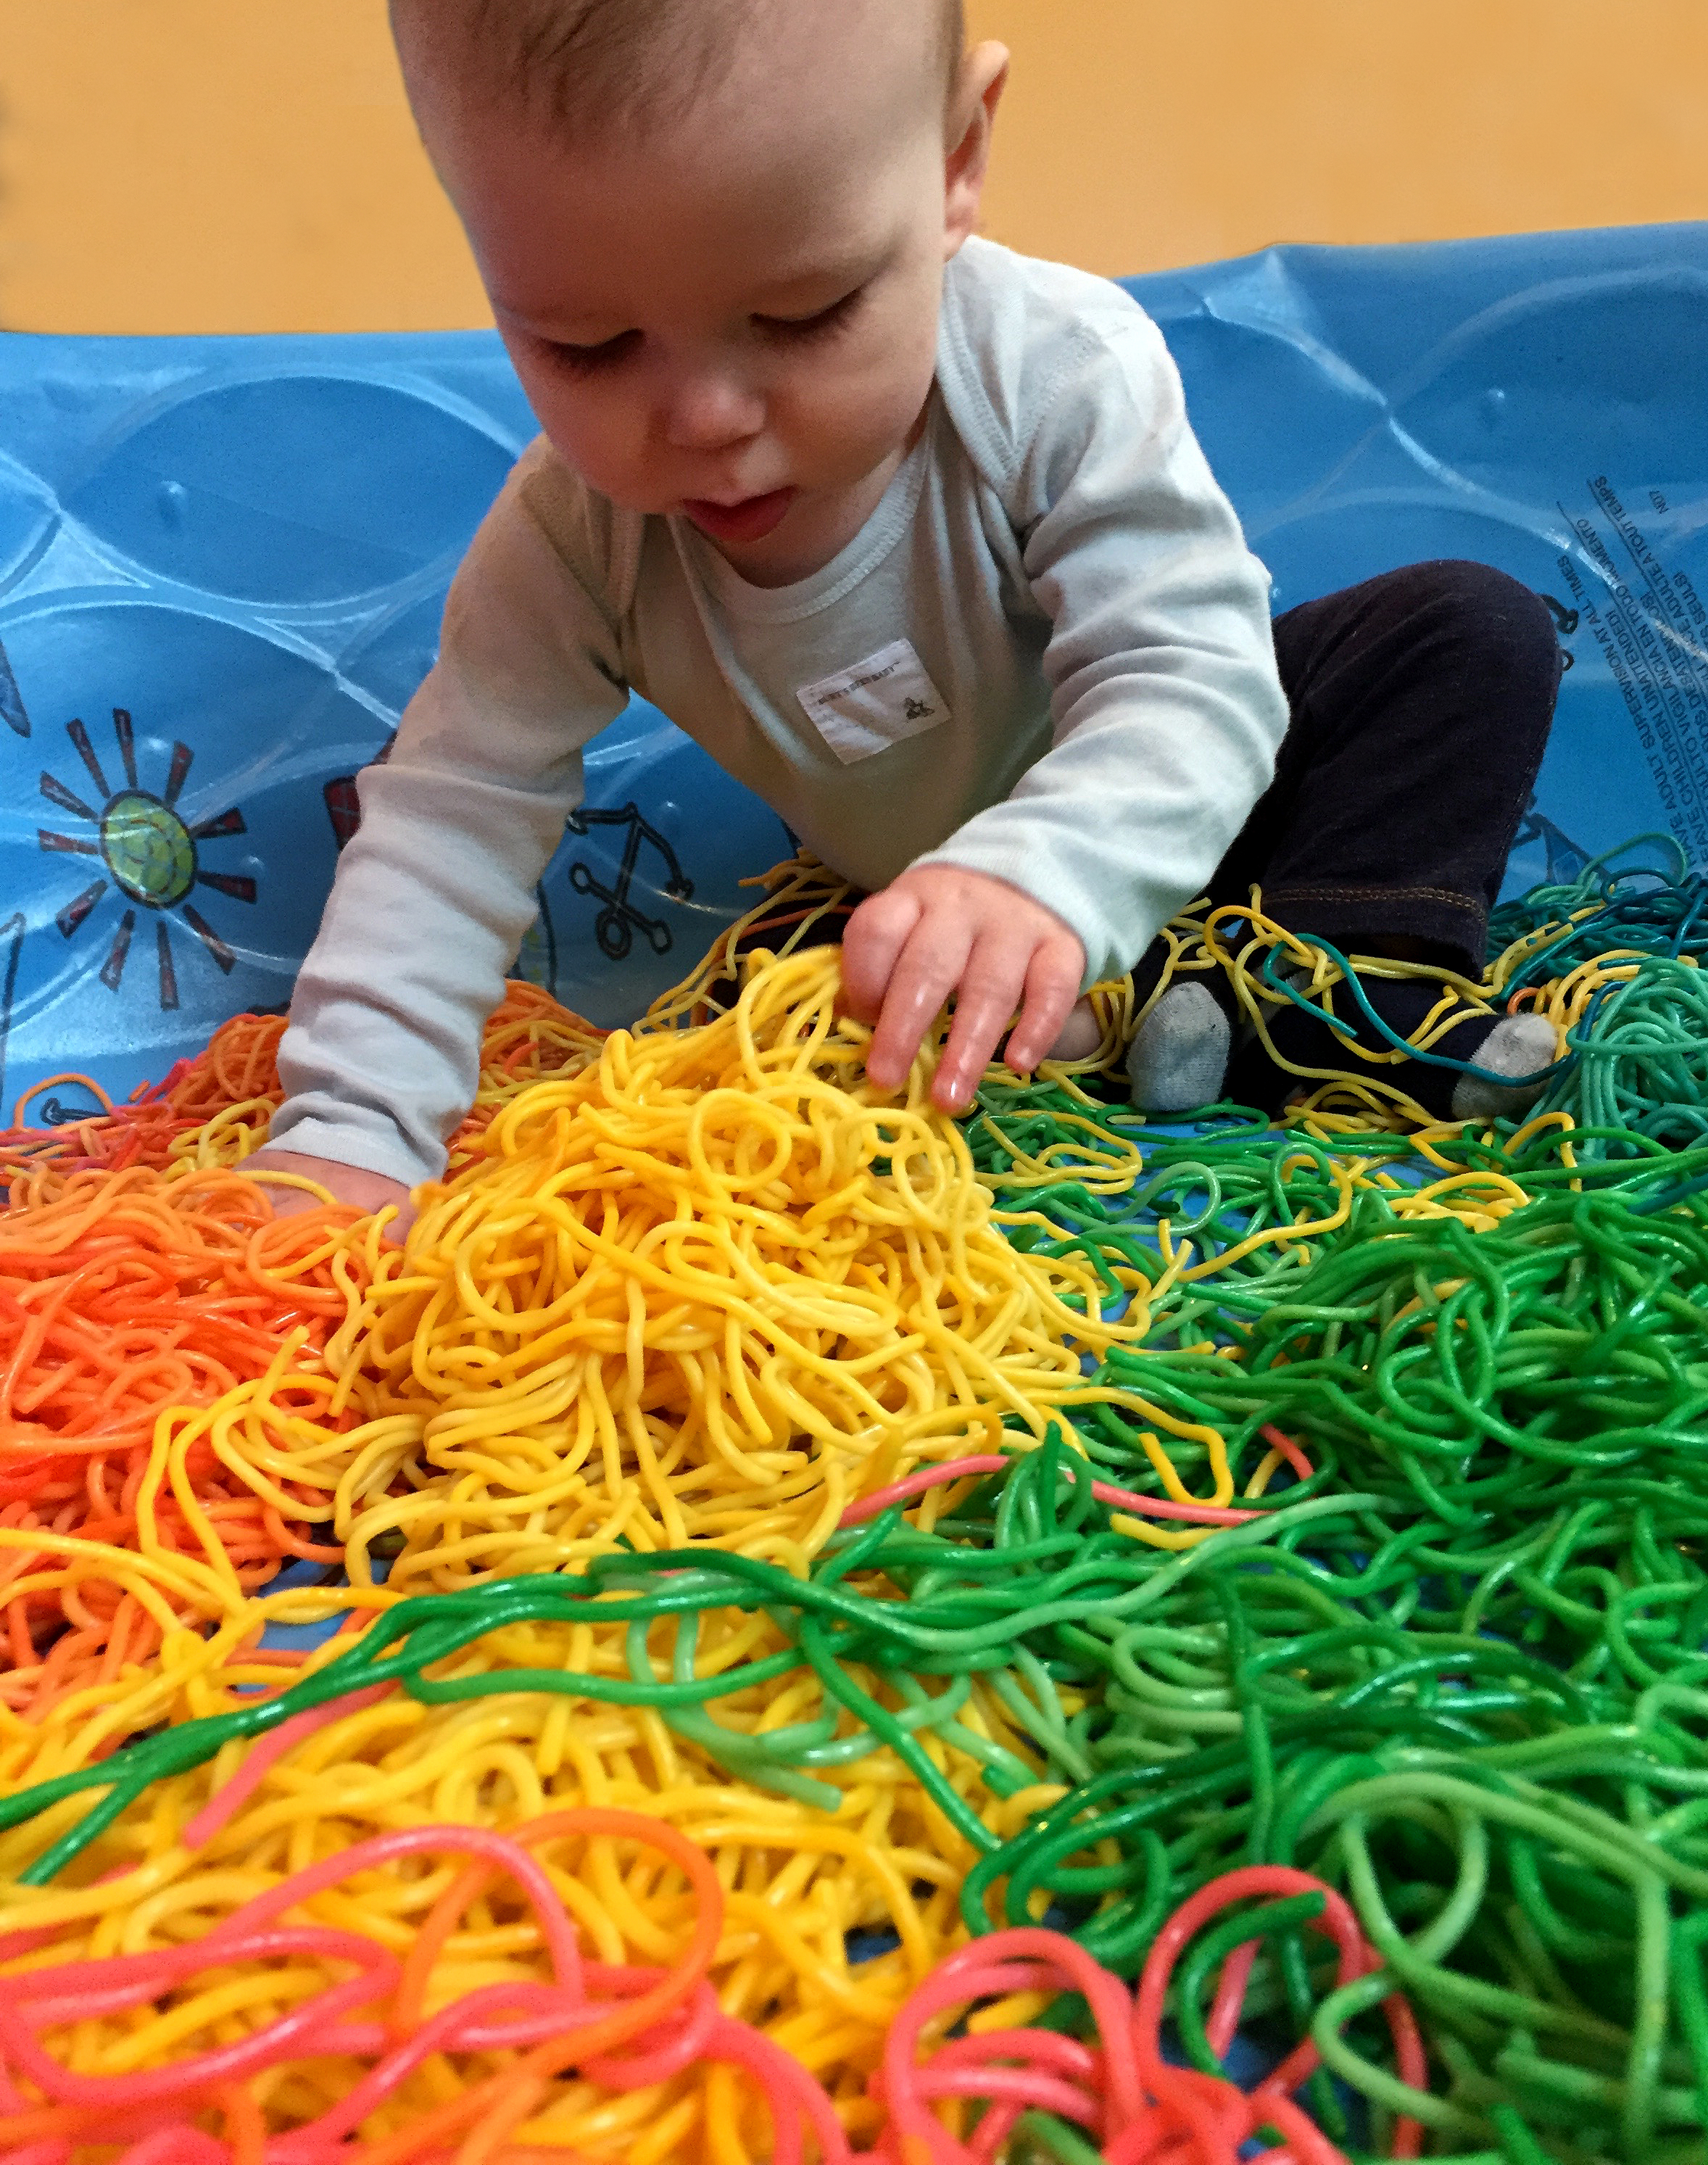 baby_colorednoodles.jpg